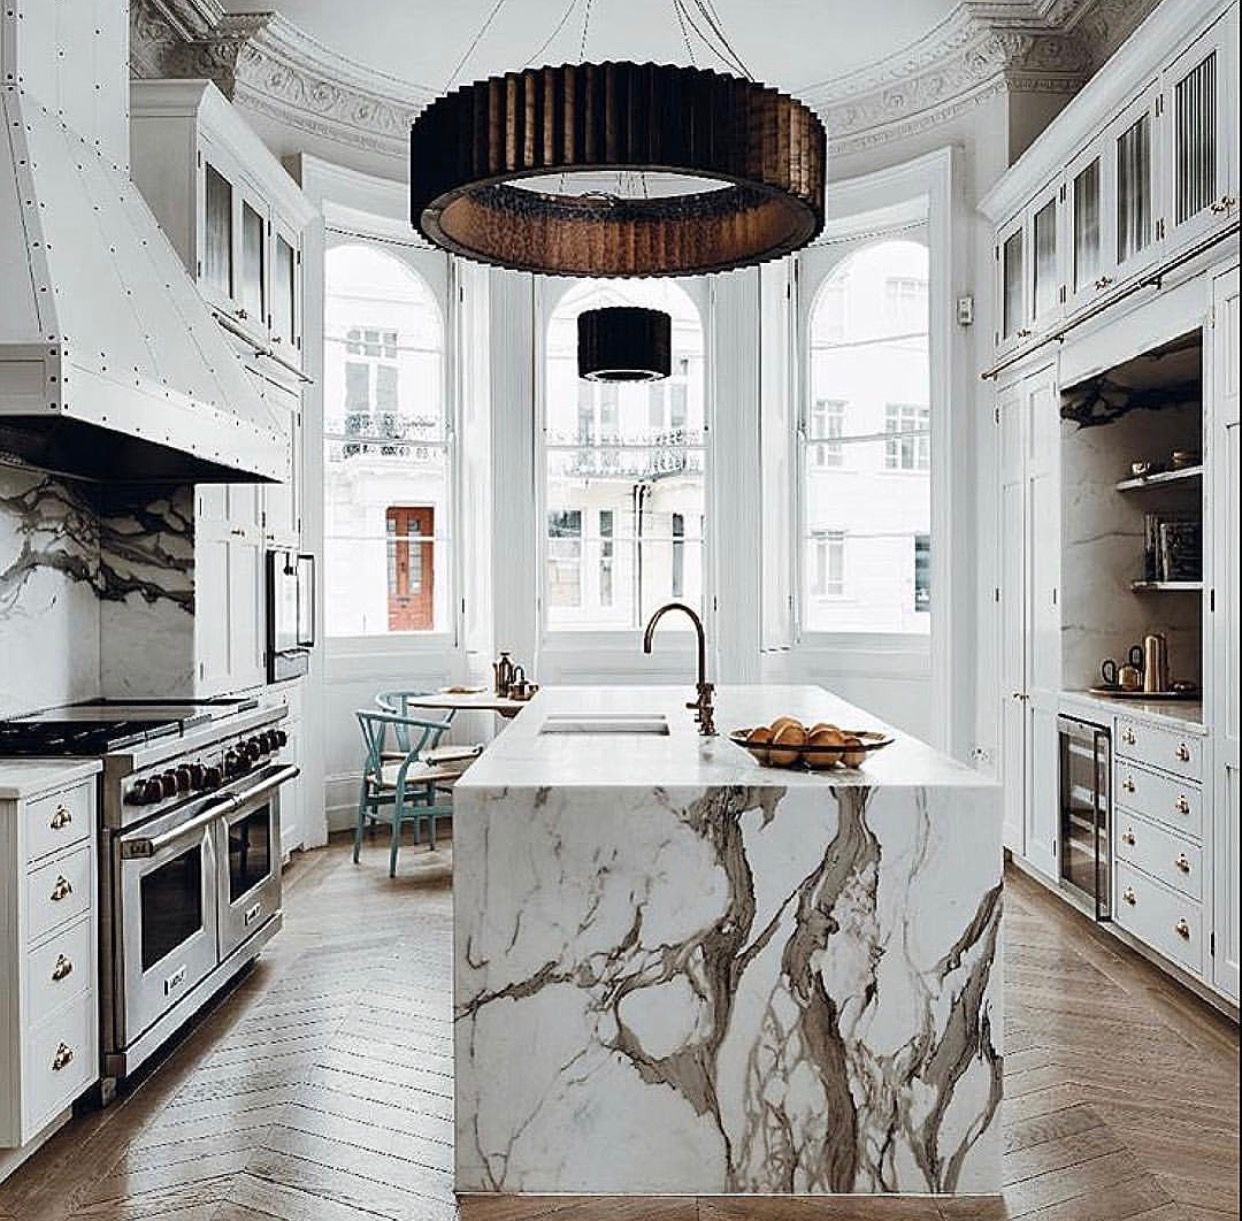 Stunning marble and overhead light fixture | Kitchens I\'d Like to ...